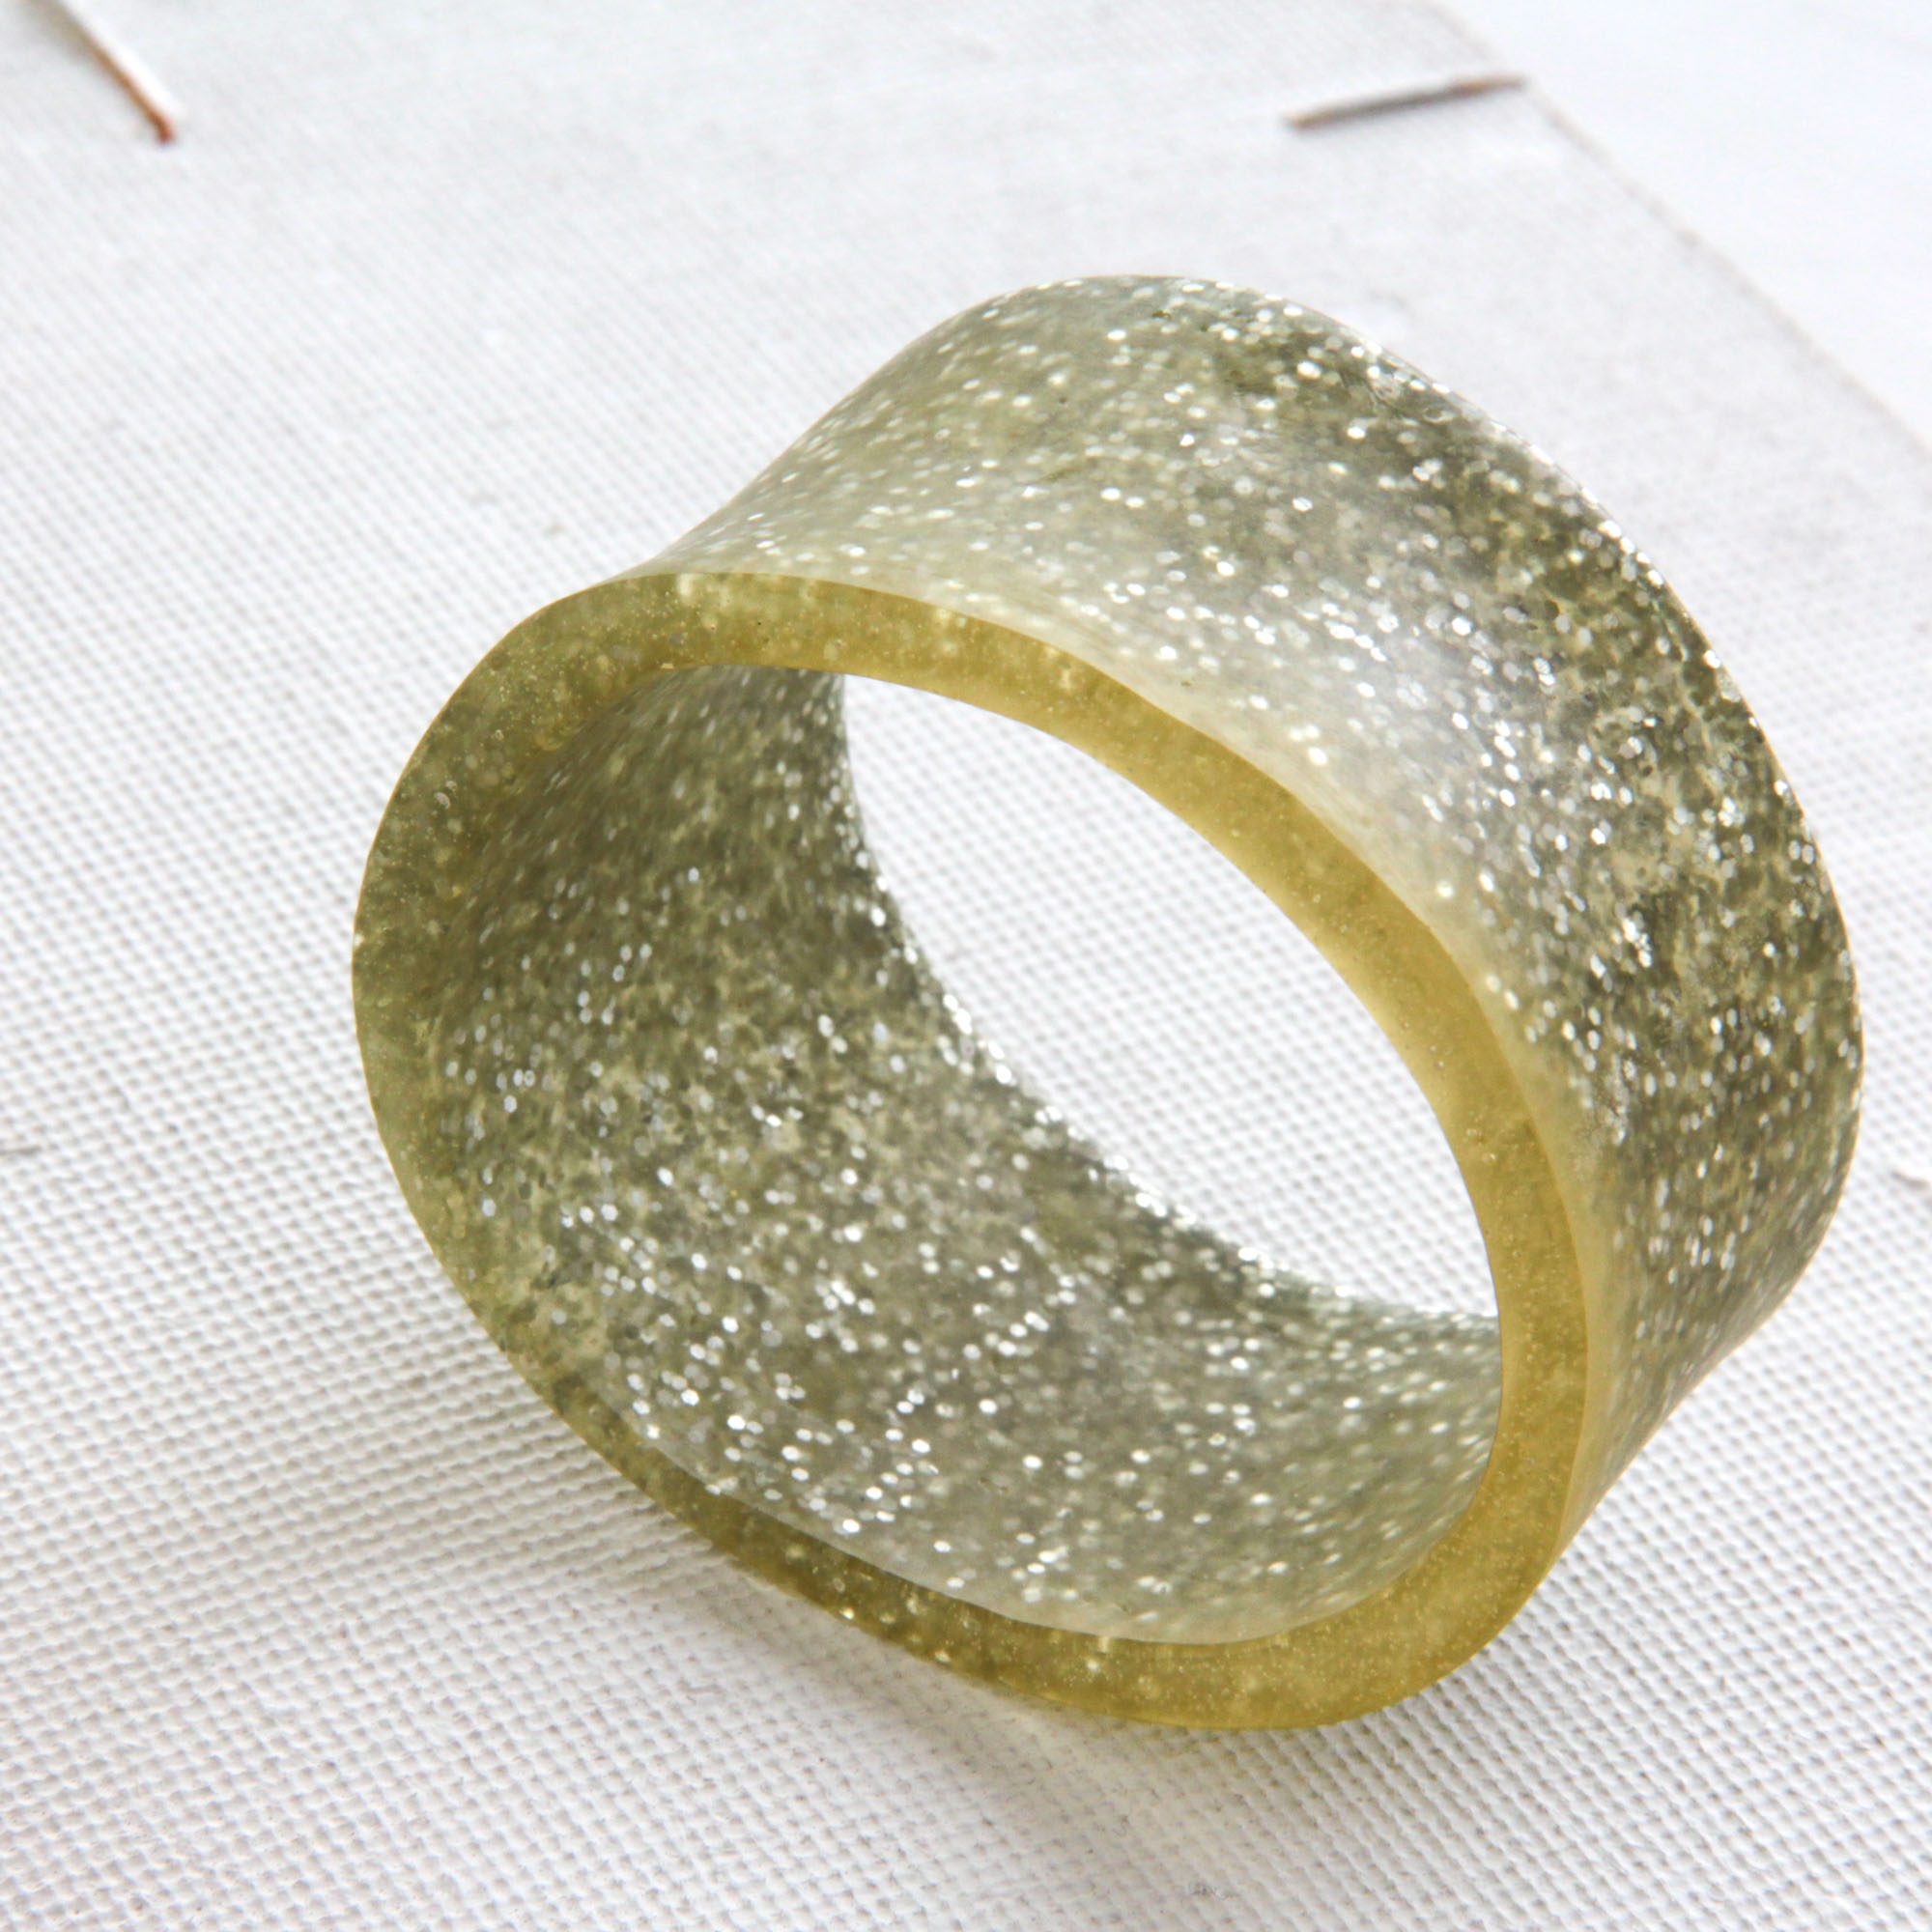 glitter resin bangle - • handcasted• transparent plus full of glitter fun• bold, chunky and chic• br345 euro